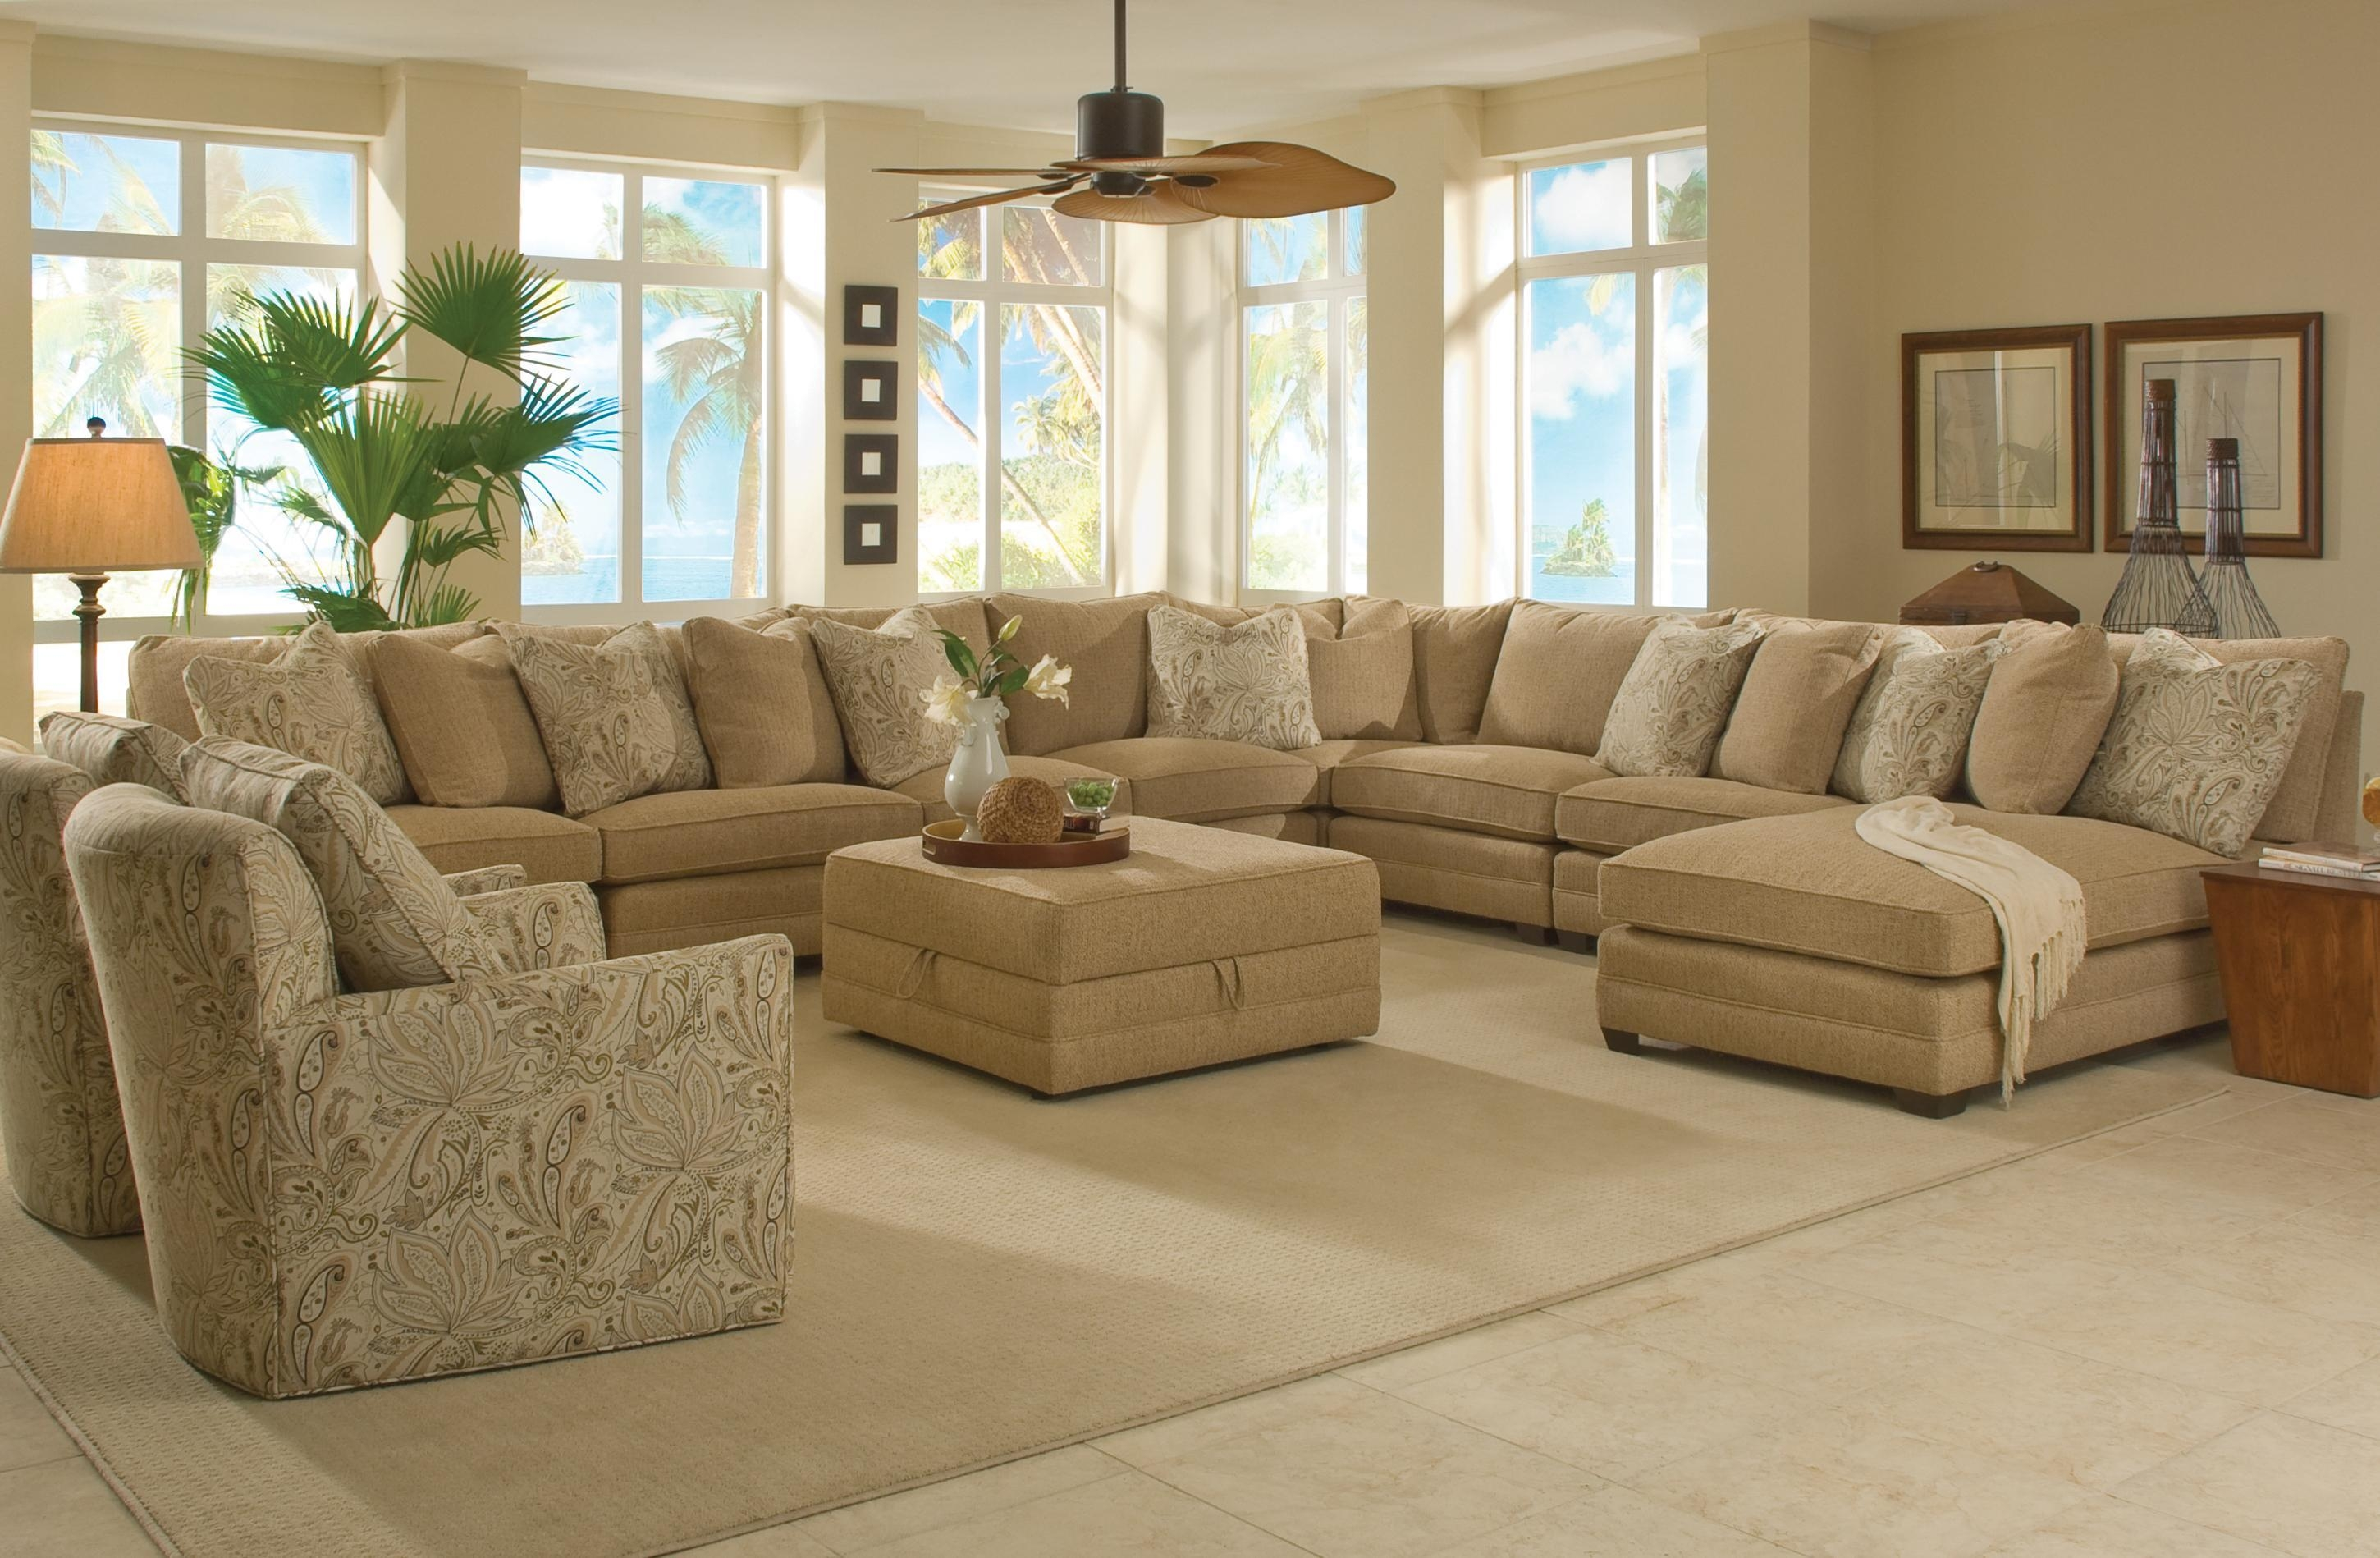 Sam Moore Margo Wide Sectional Sofa | Moore's Home Furnishings Intended For Sam Moore Sofas (View 9 of 20)